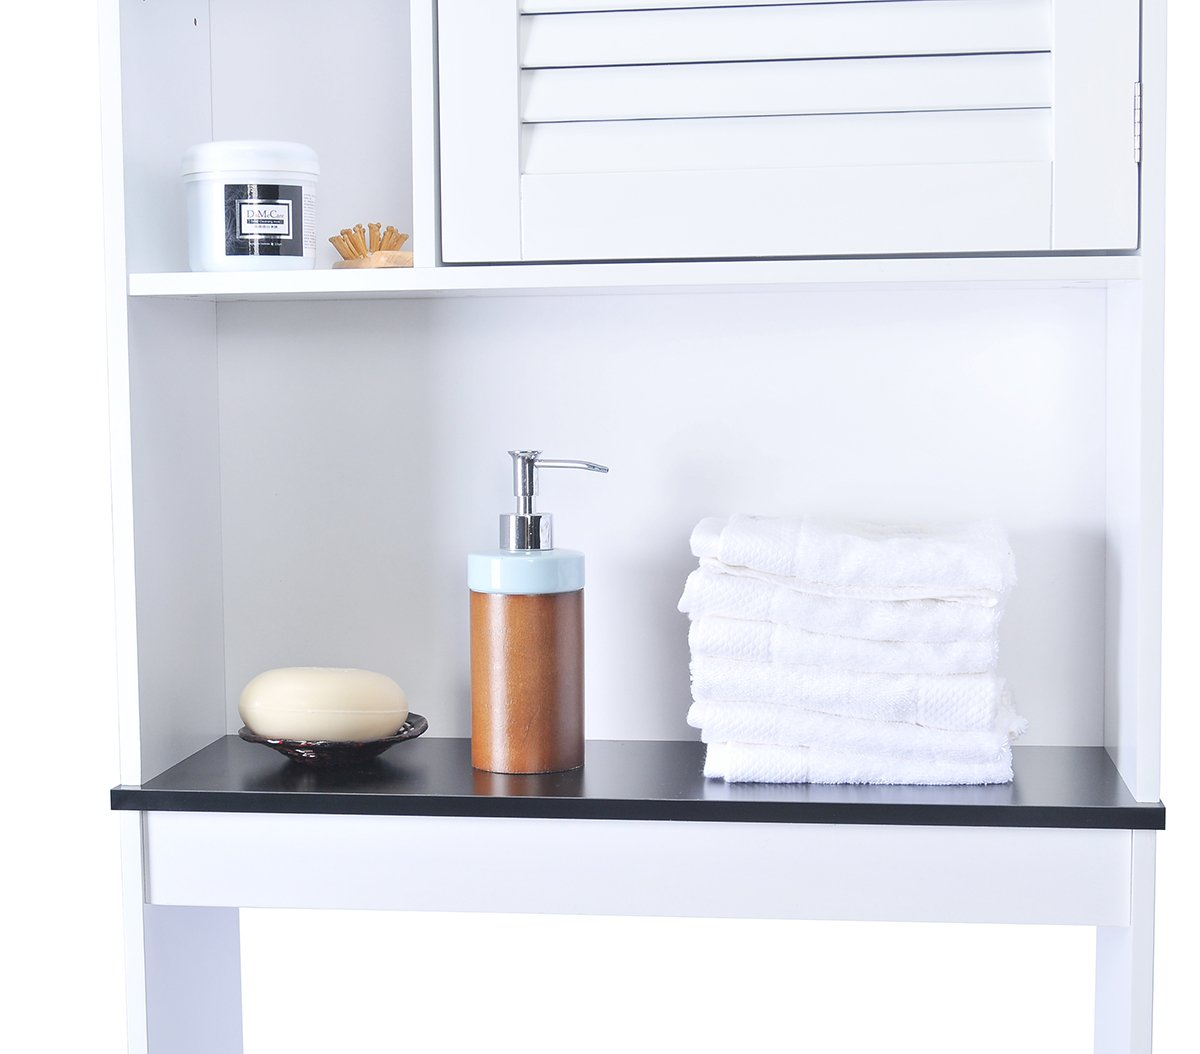 Spirich Home Bathroom Shelf over the toilet, Bathroom Cabinet Organizer over toilet with Louver Door, White Finish by Spirich Home (Image #3)